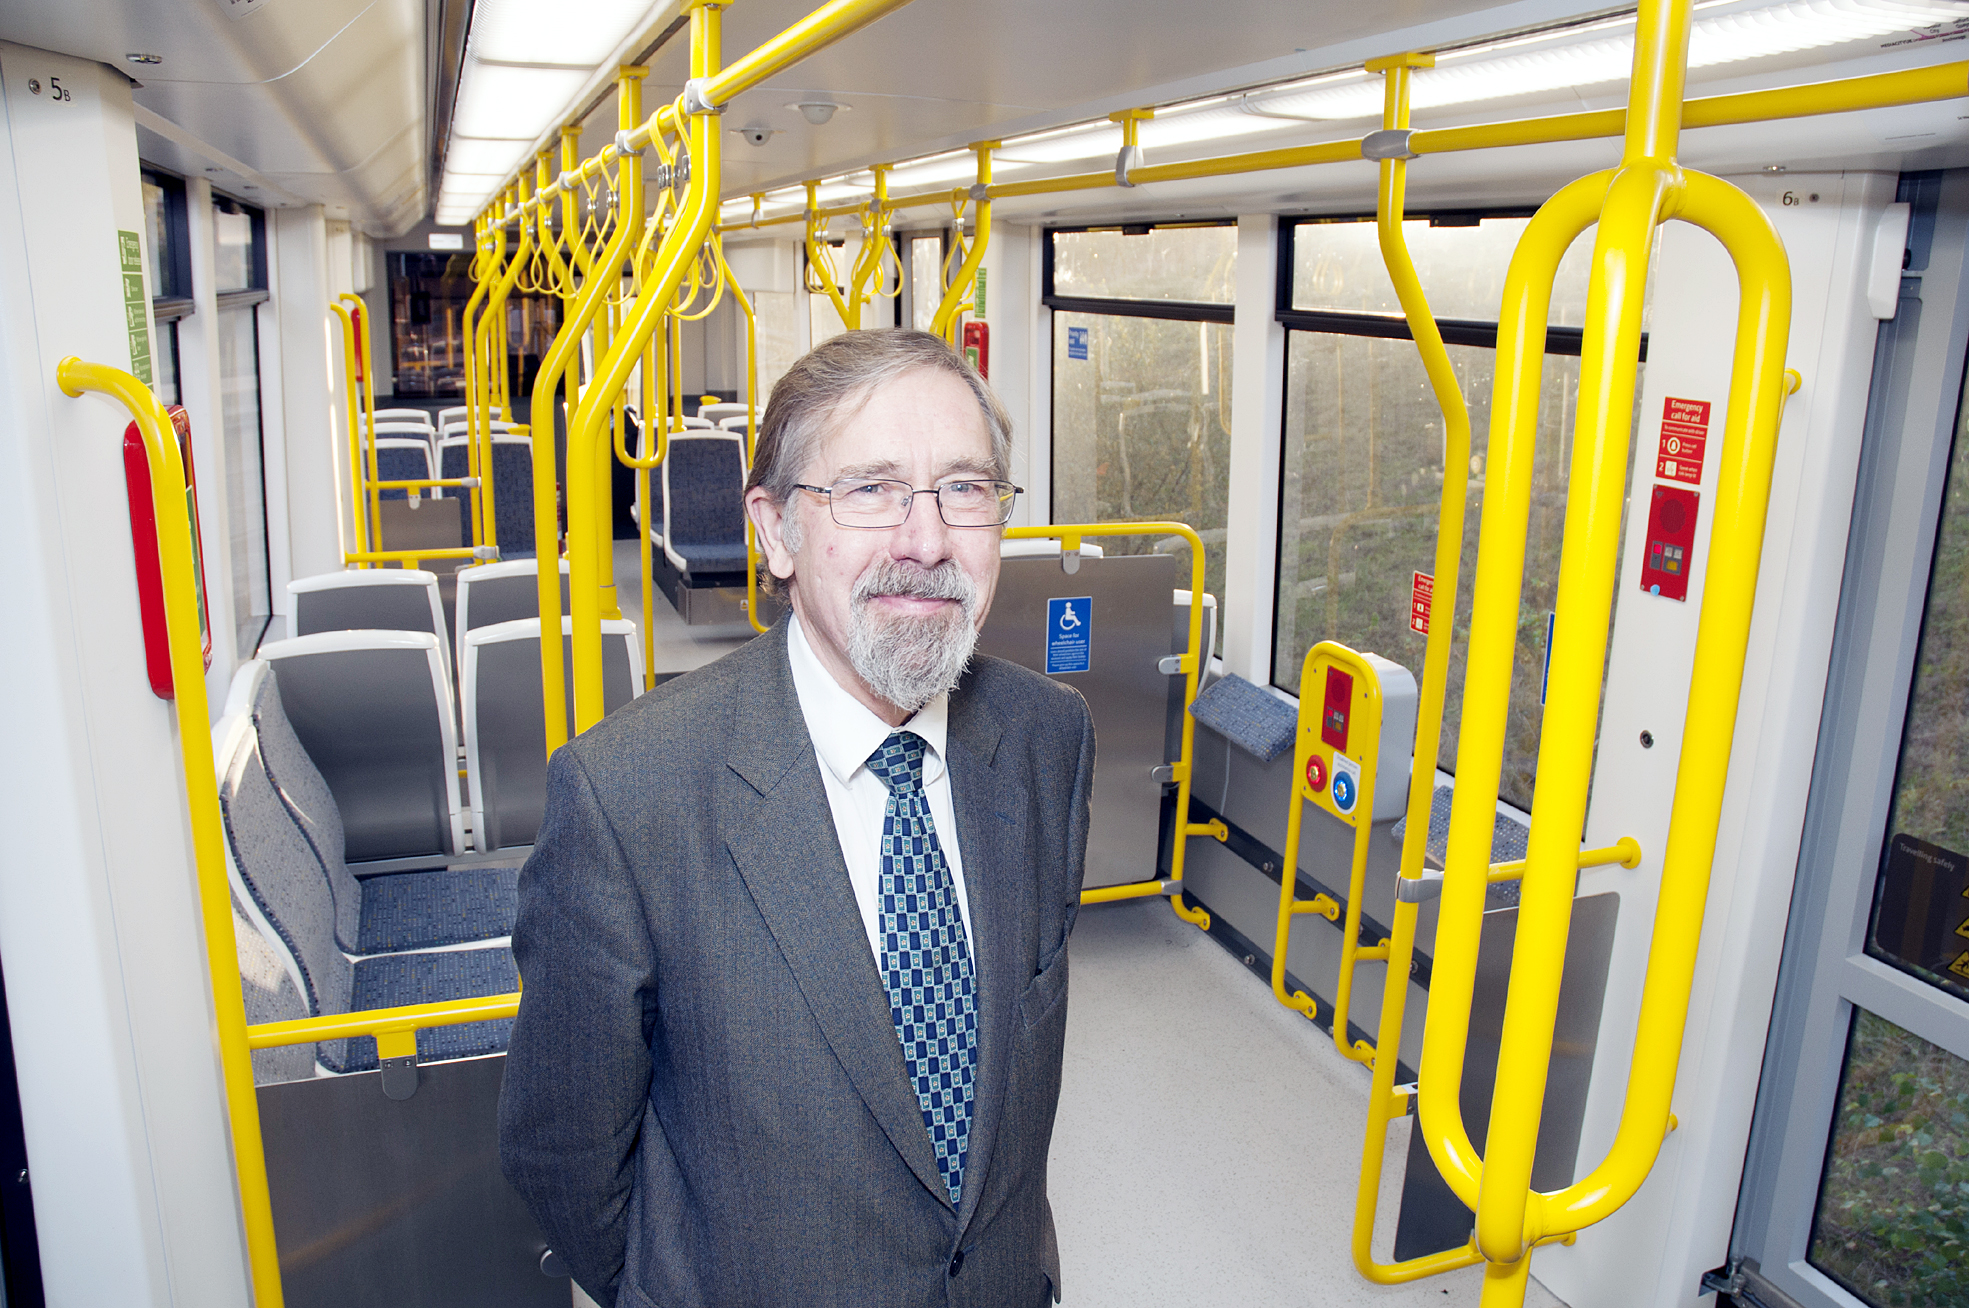 Councillor Andrew Fender on one of the new-style Metrolink trams